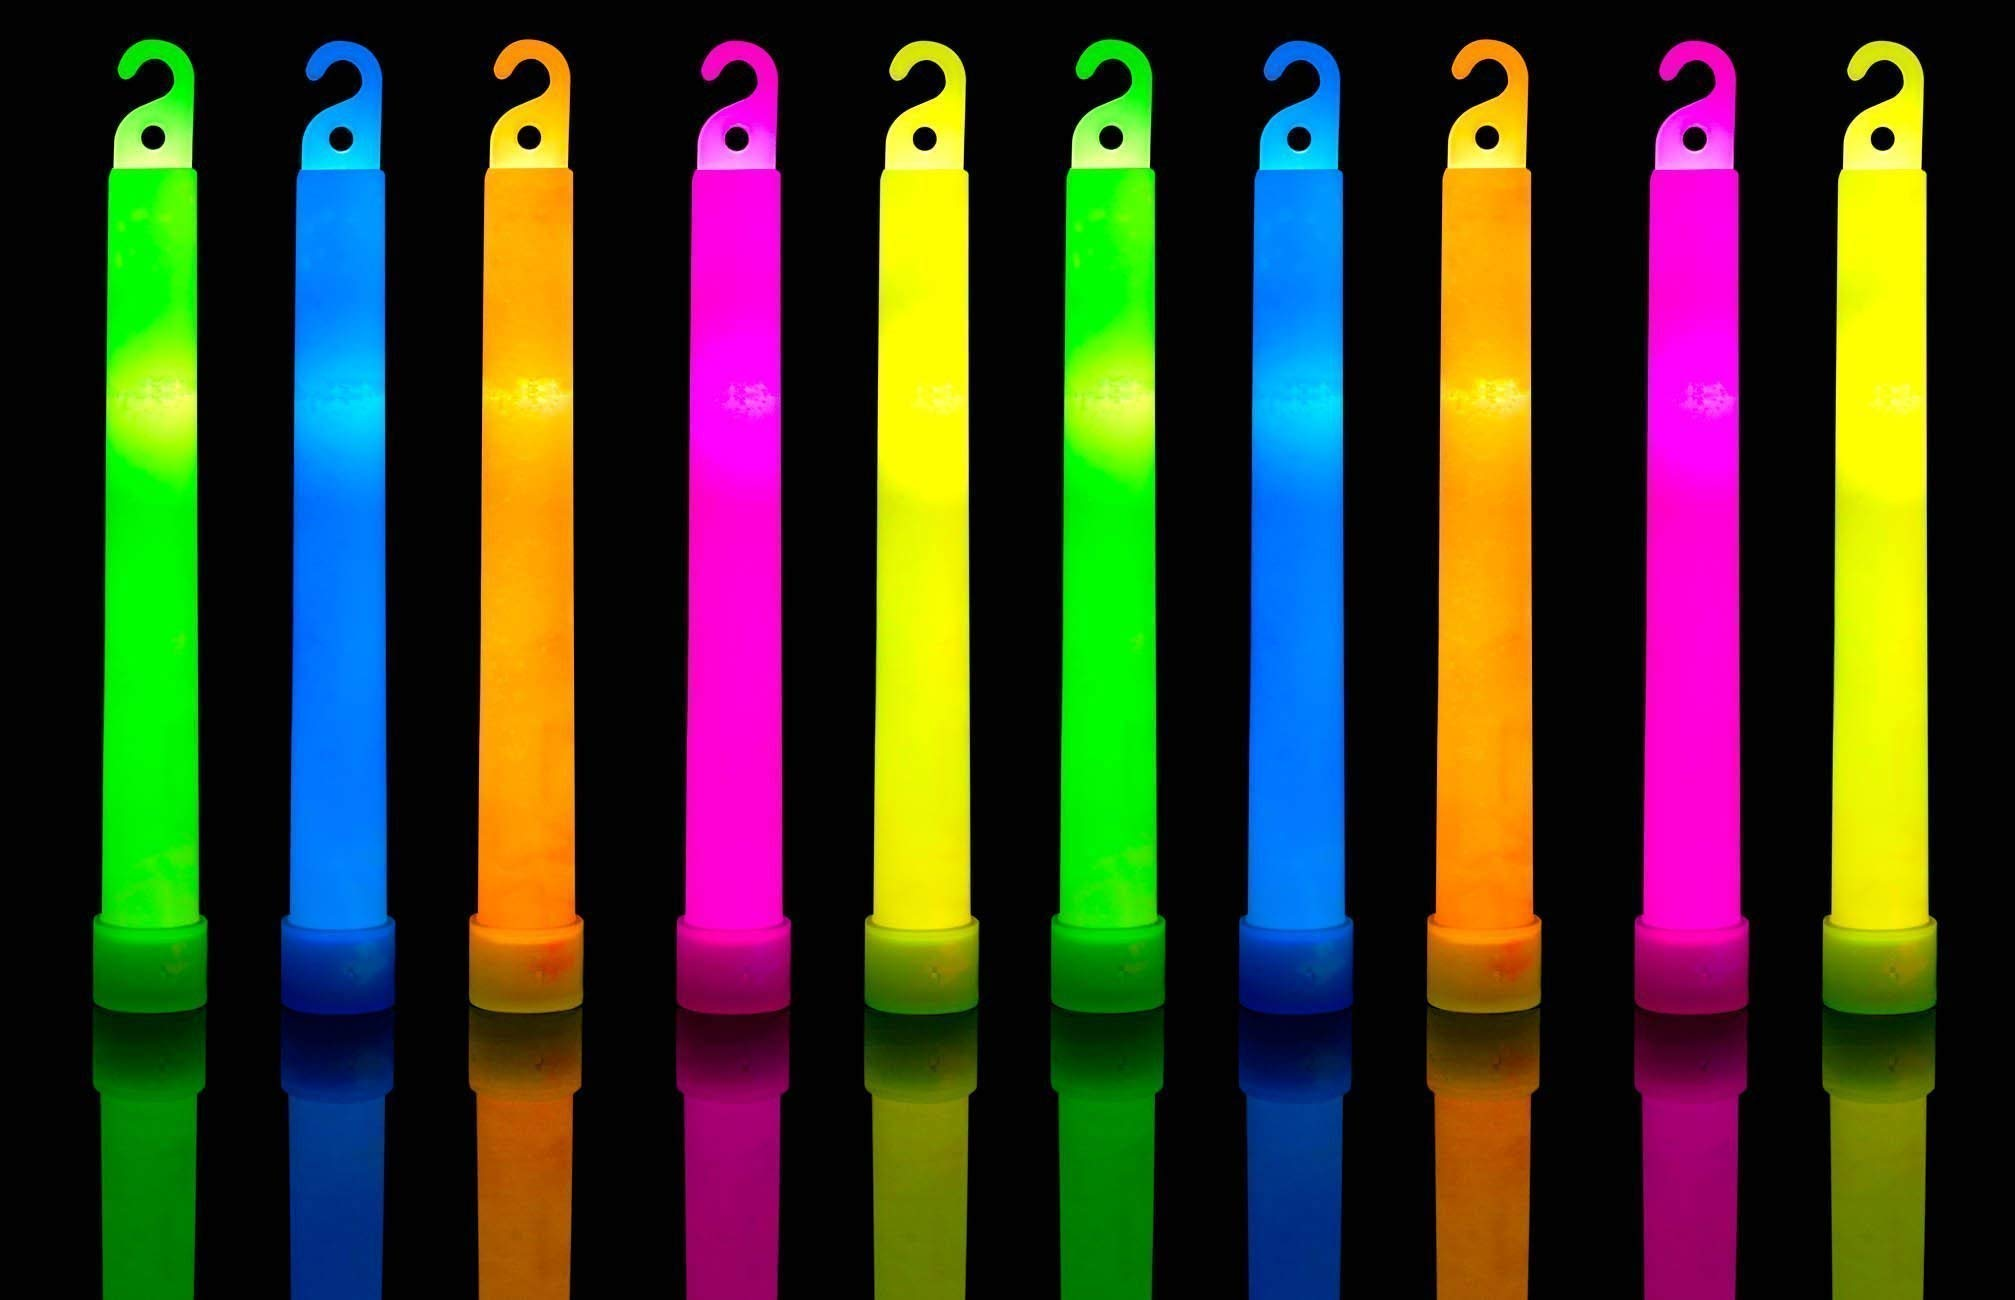 30 Ultra Bright Glow Sticks Plus 30 Party Strings - Total 60 Pcs - Bulk Pack Industrial Grade - 6 Inch Waterproof Glow Stick - Glow Light With 12 Hour Duration - Mixed Colors - Bend, Shake To Activate by HSGUS (Image #3)